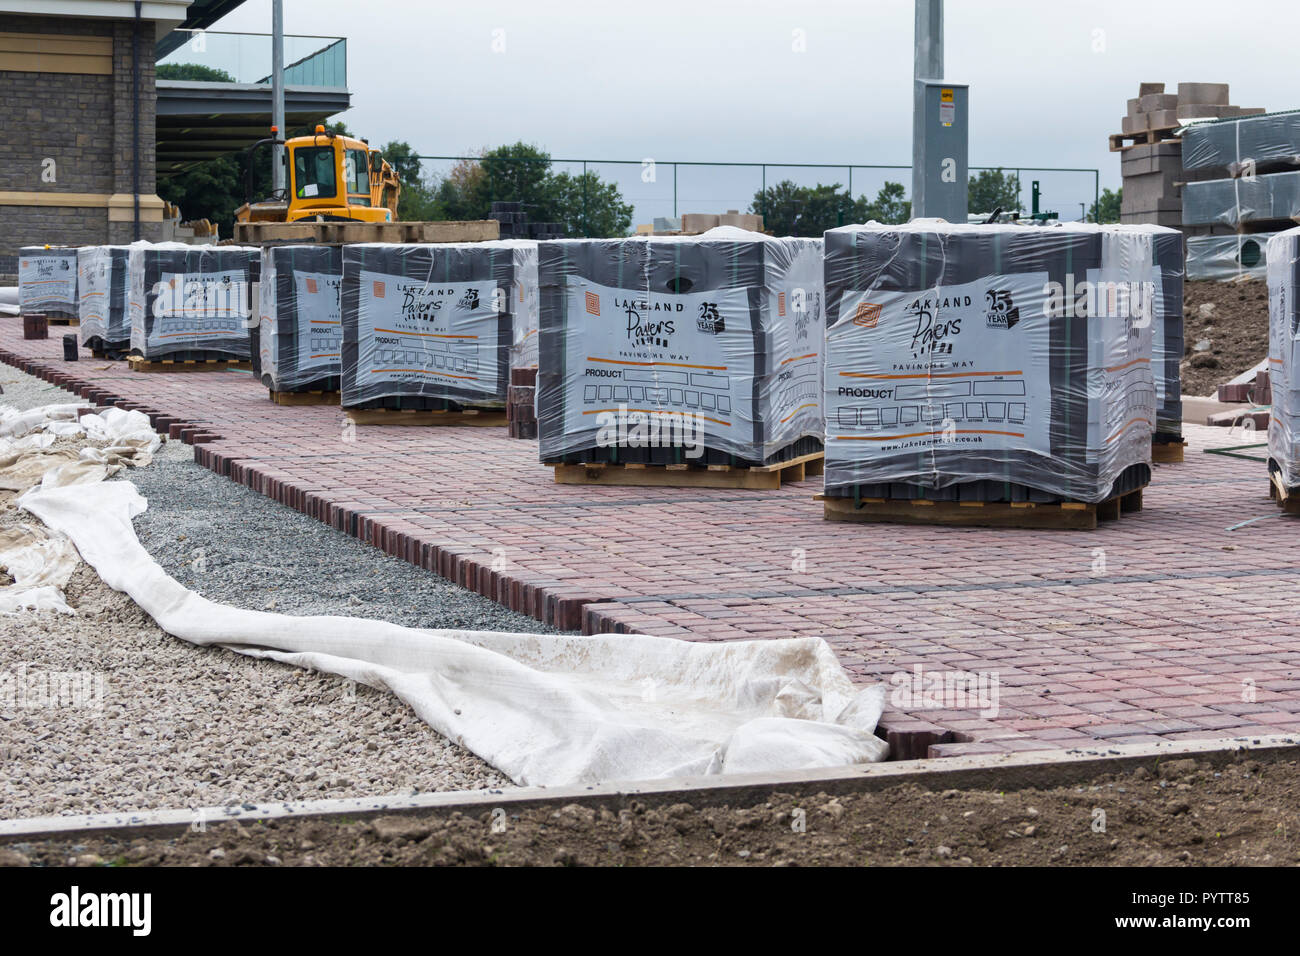 Block paving being laid with sub-base materials visible in the new car park at  Mint Bridge, the new rugby union football ground in Kendal, Cumbria.   - Stock Image